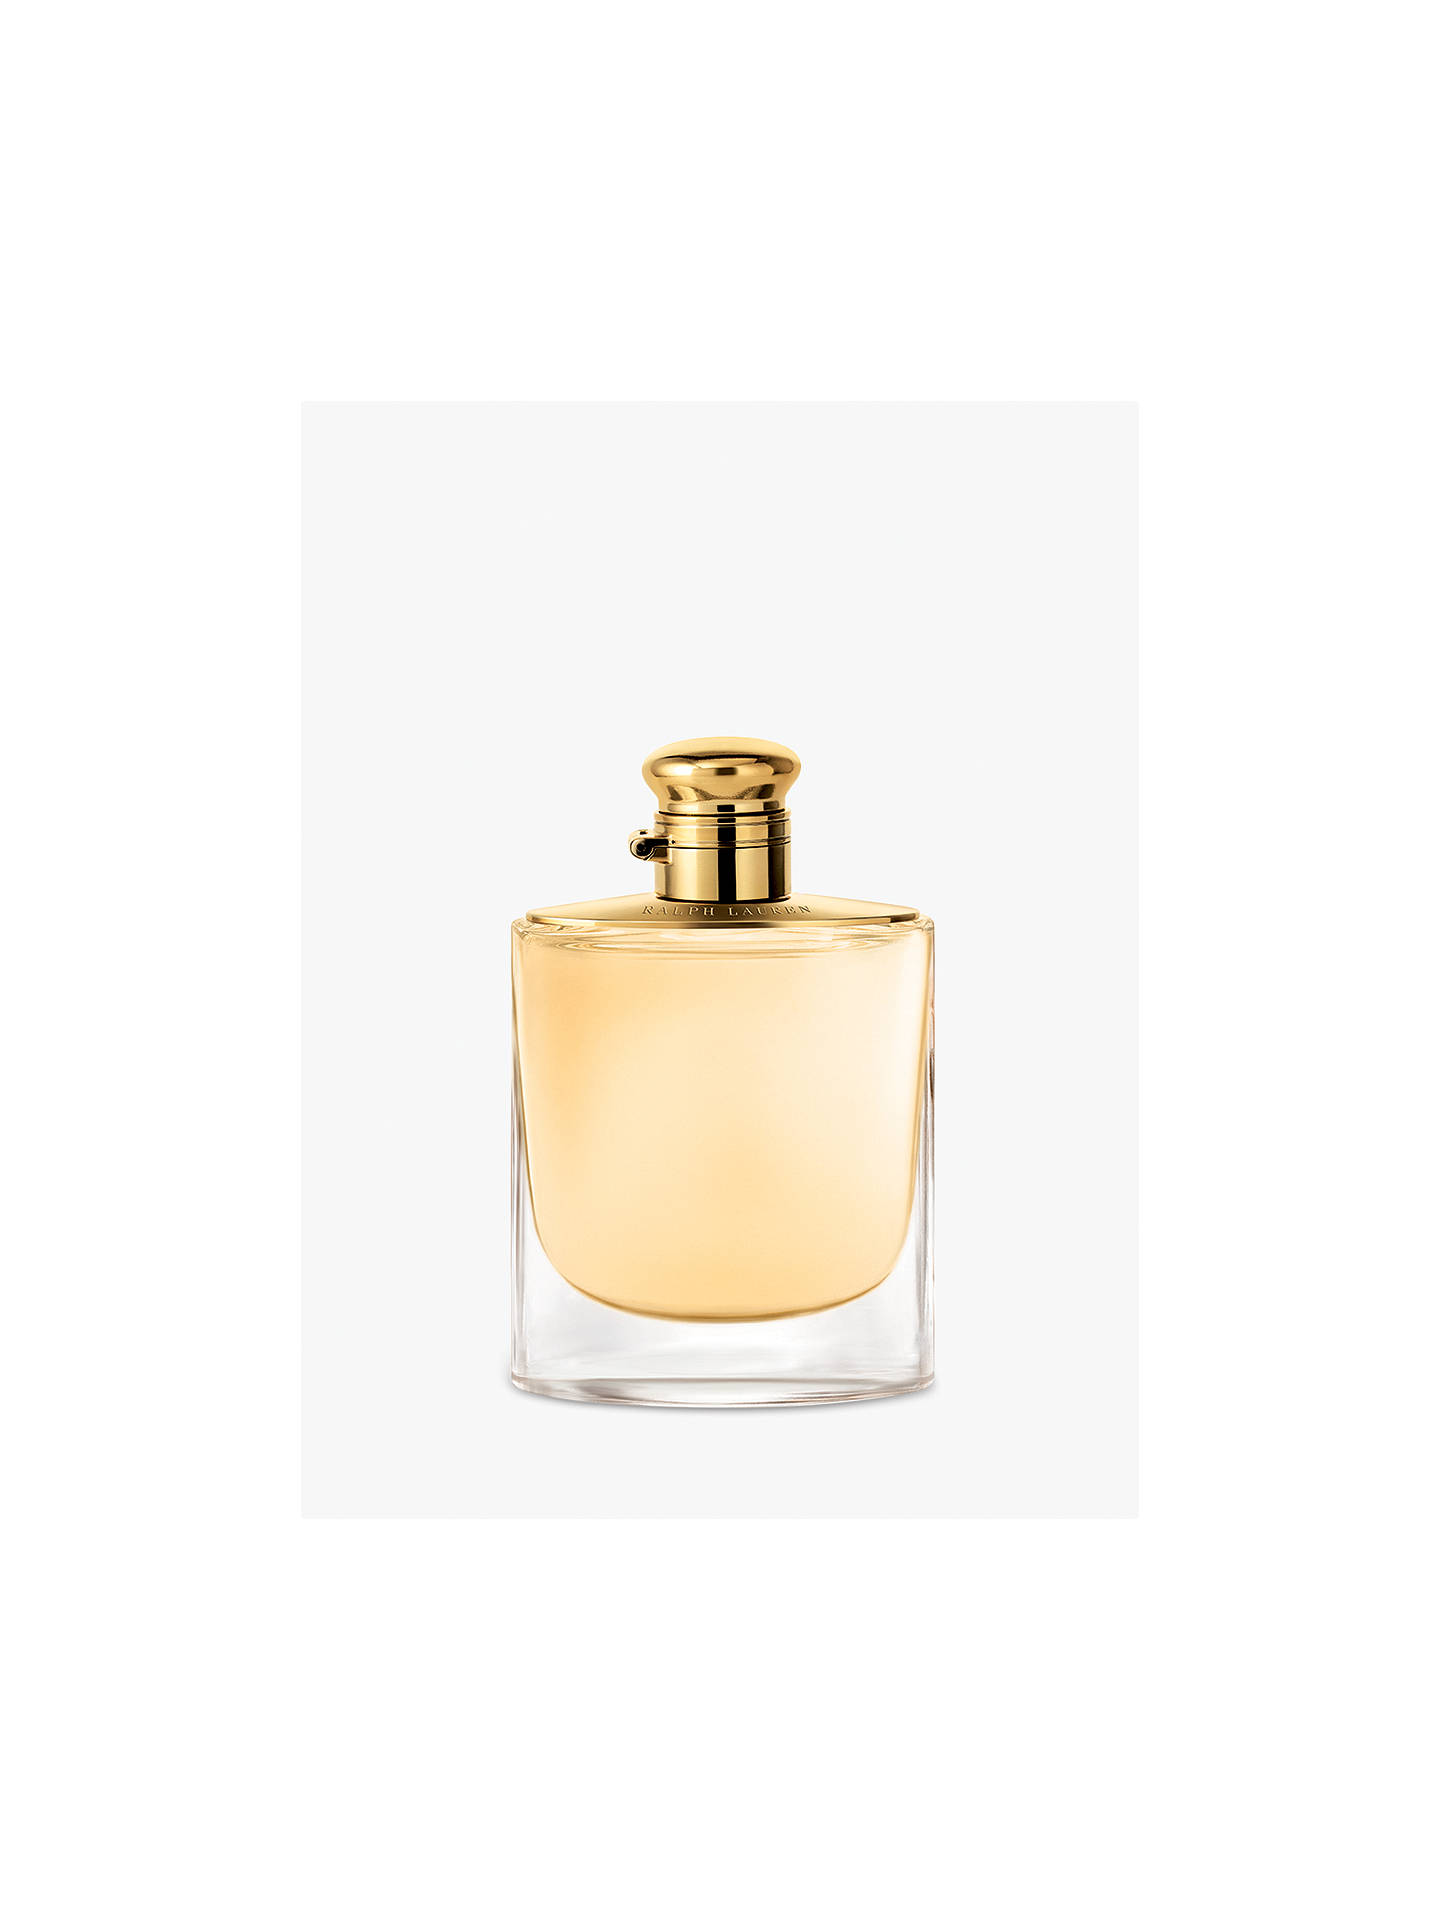 BuyRalph Lauren Woman Eau de Parfum, 30ml Online at johnlewis.com